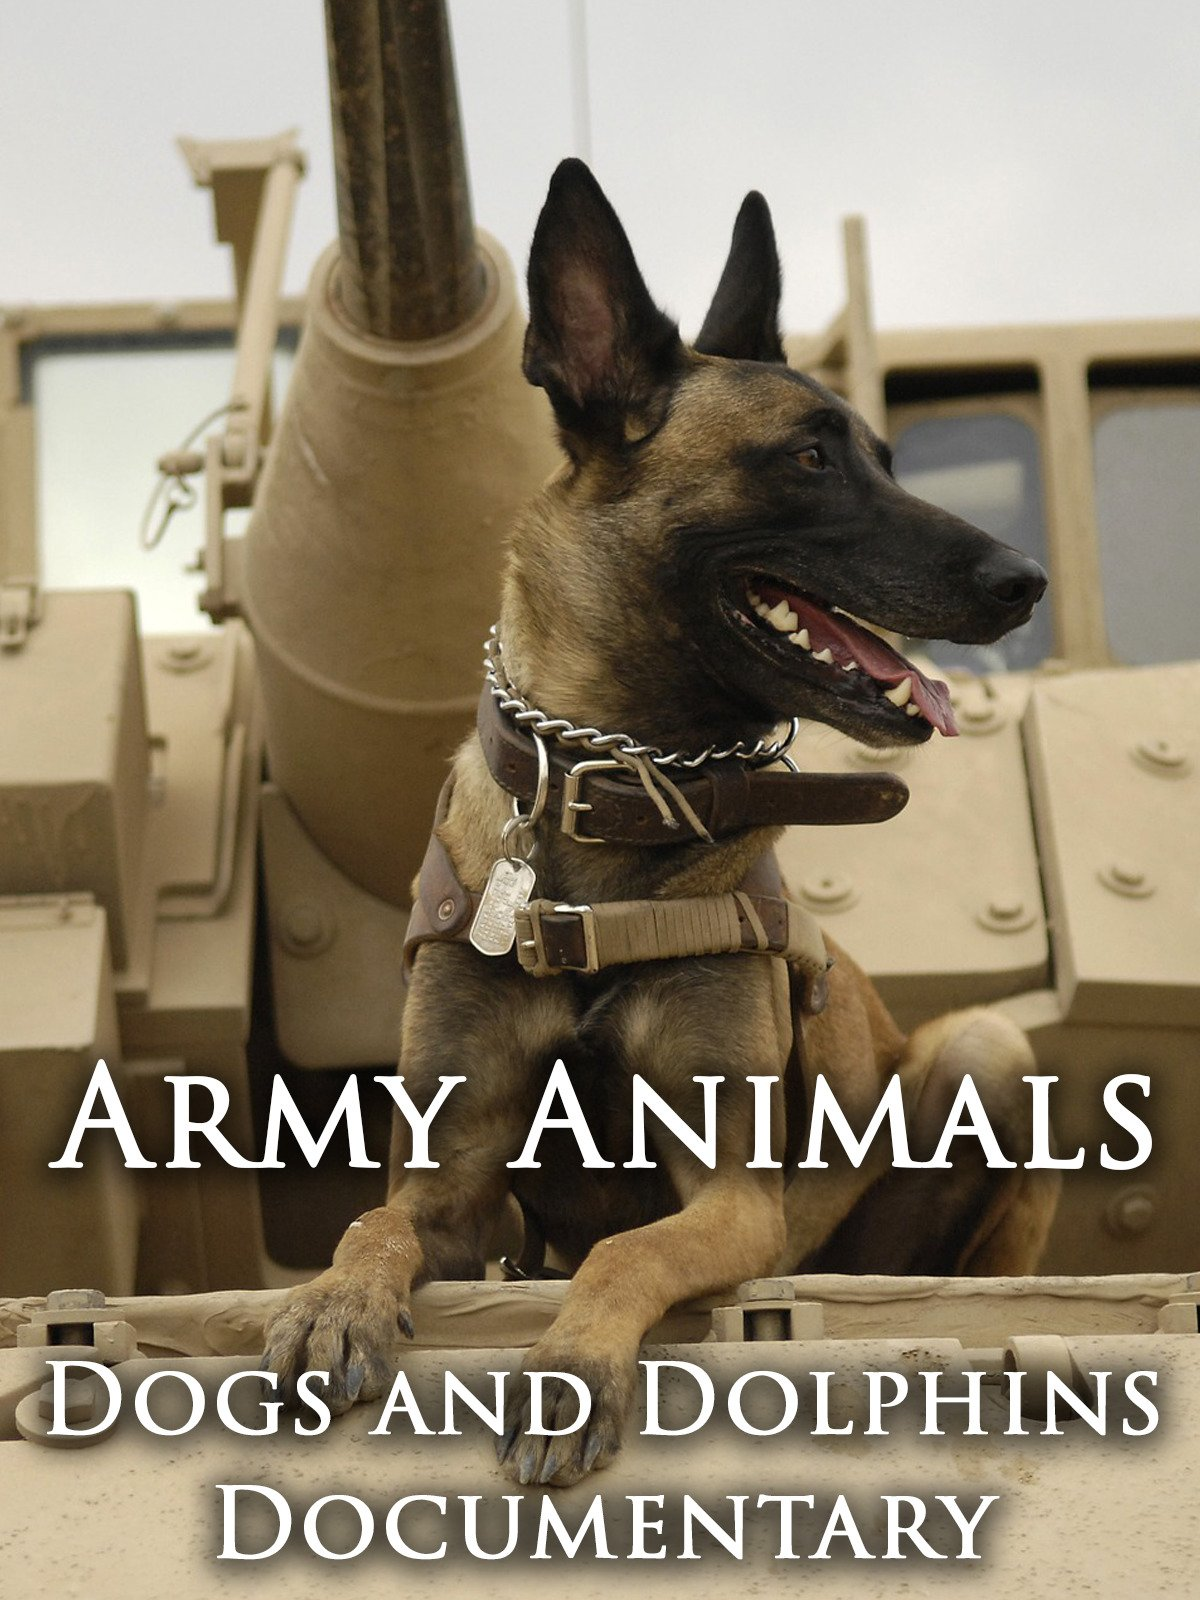 Army Animals: Dogs and Dolphins Documentary